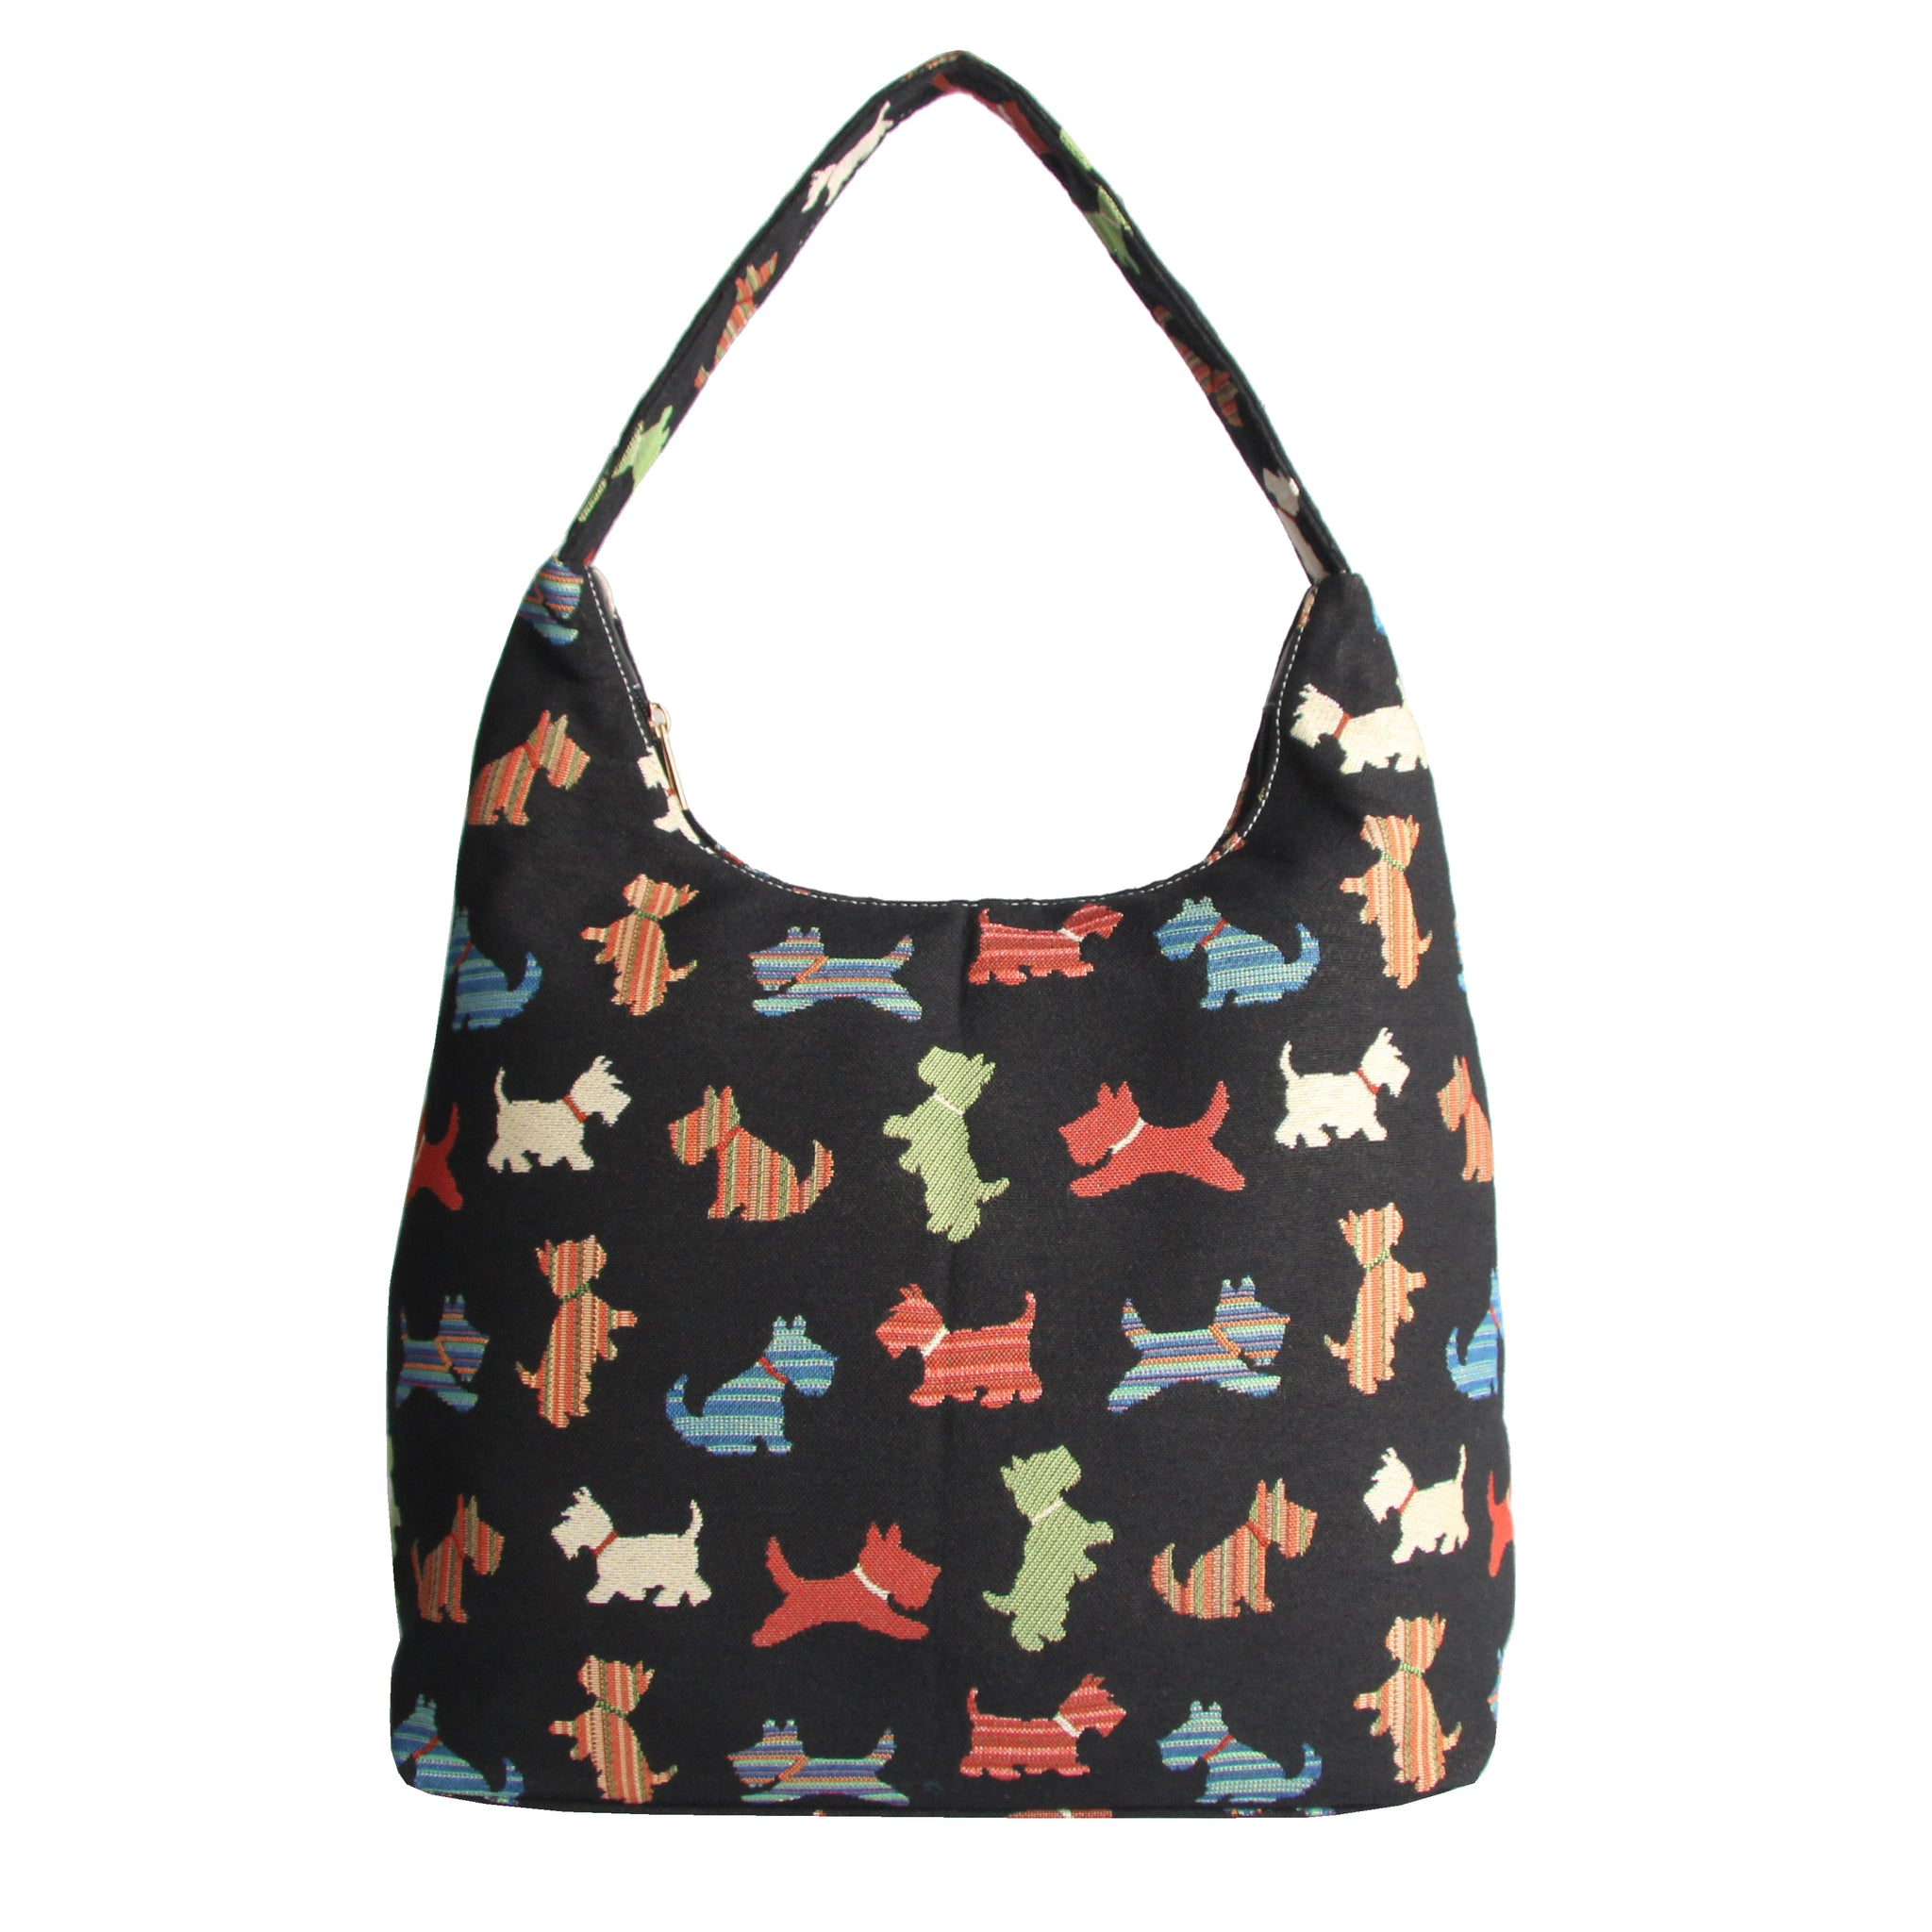 HOBO-SCOT | SCOTTIE DOG HOBO HANDBAG SHOULDER BAG - www.signareusa.com